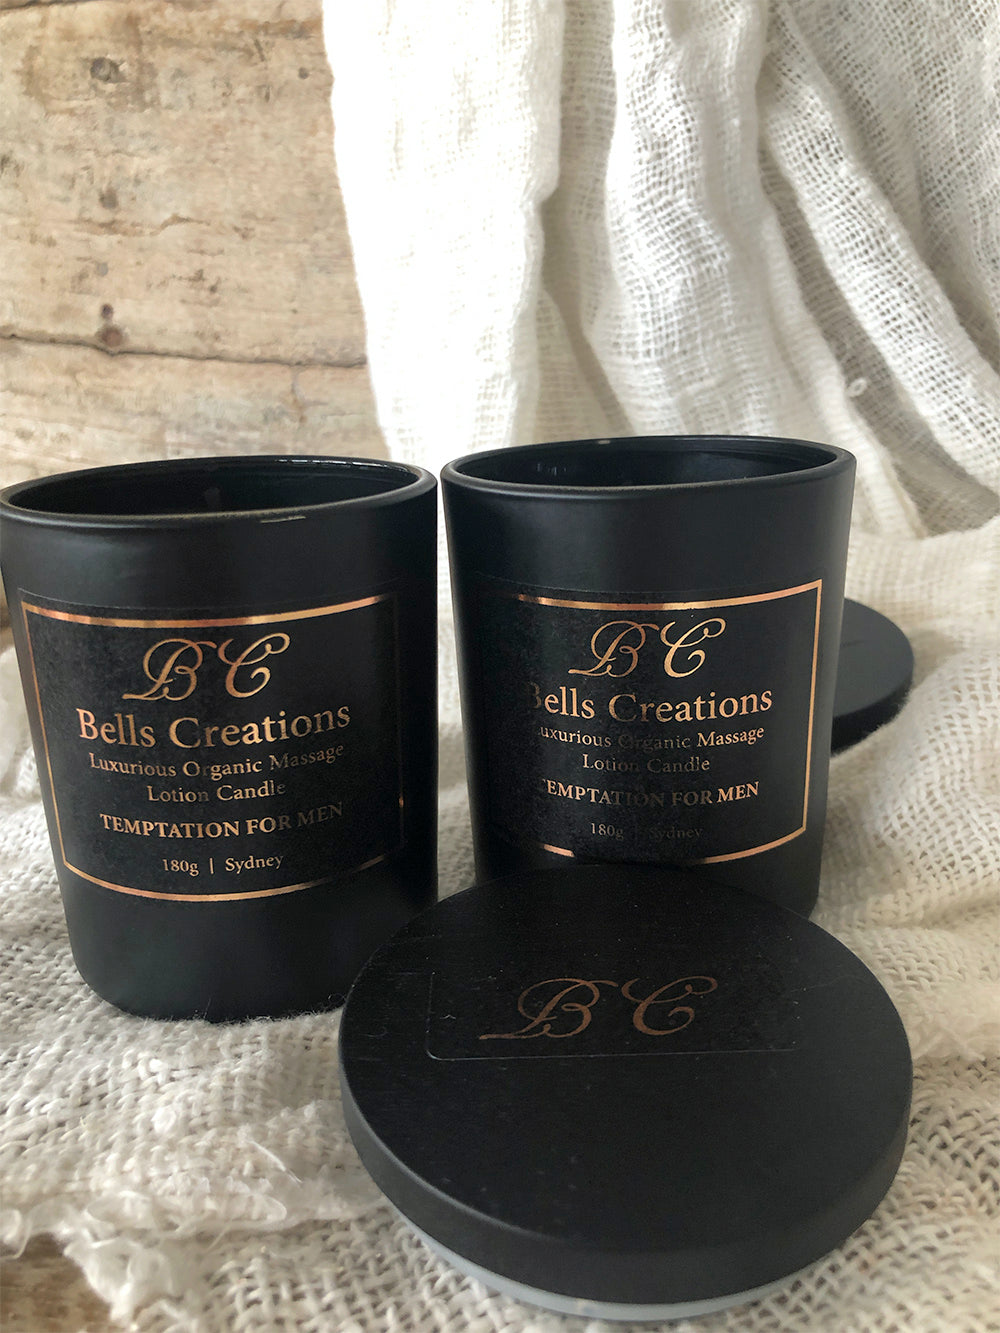 Temptation for Men Luxurious Organic Massage Lotion Candle